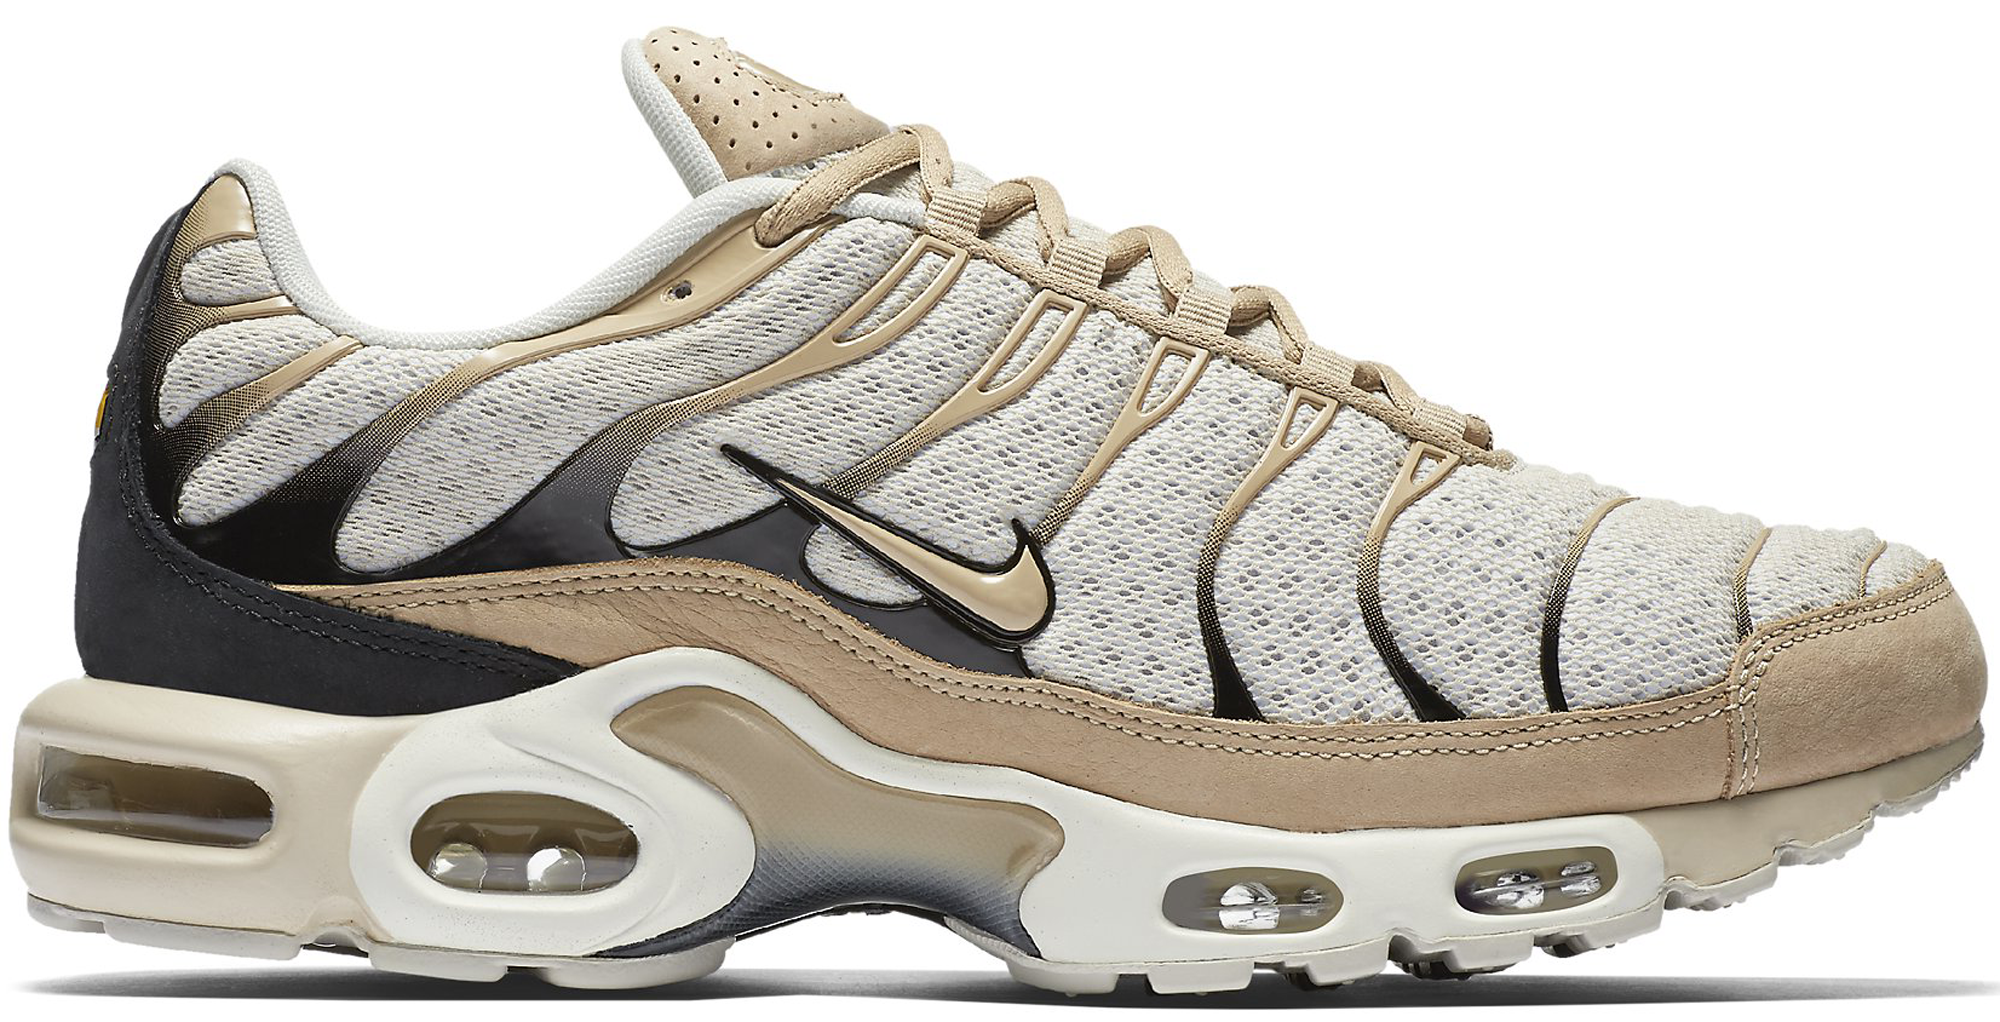 Cheap Nike Air Max TN 3 Cheap Nike air max tn size 13 Society for Research in